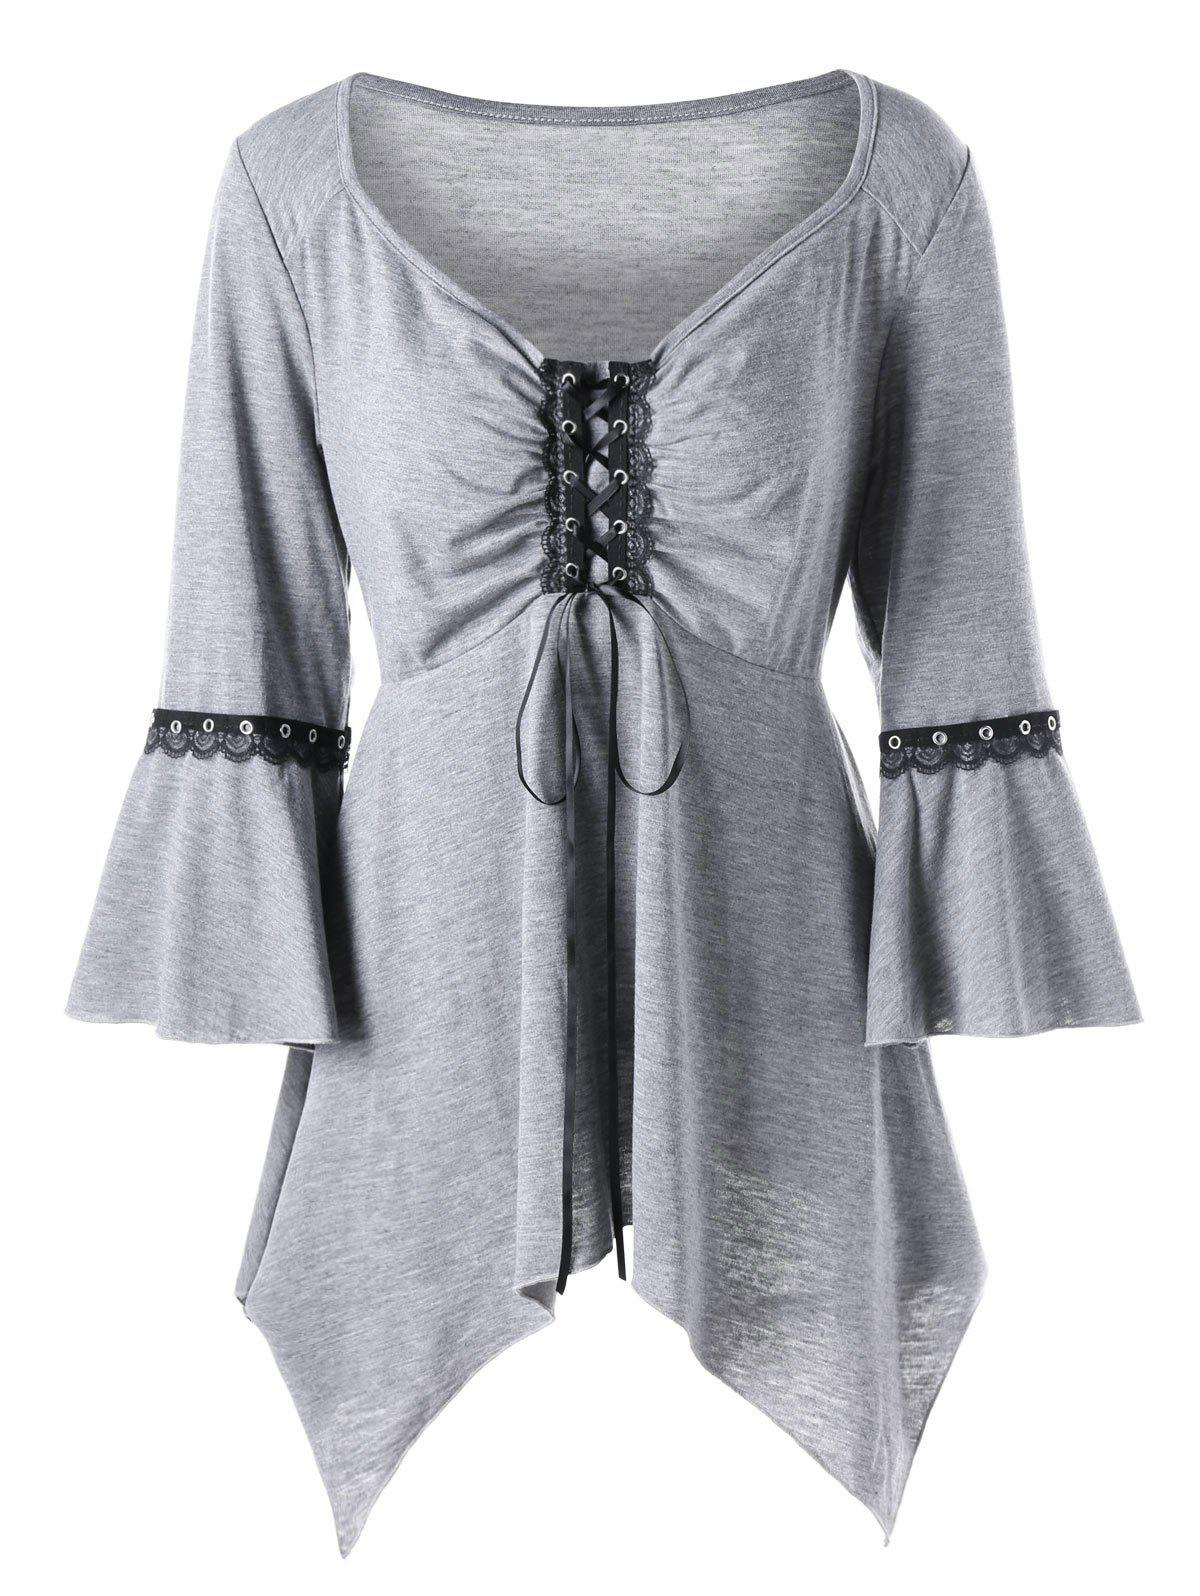 Plus Size Flare Sleeve Lace Up TeeWOMEN<br><br>Size: 5XL; Color: LIGHT GRAY; Material: Polyester,Spandex; Shirt Length: Regular; Sleeve Length: Three Quarter; Collar: V-Neck; Style: Gothic; Season: Fall,Spring,Summer; Embellishment: Lace; Pattern Type: Solid; Weight: 0.3000kg; Package Contents: 1 x T-shirt;